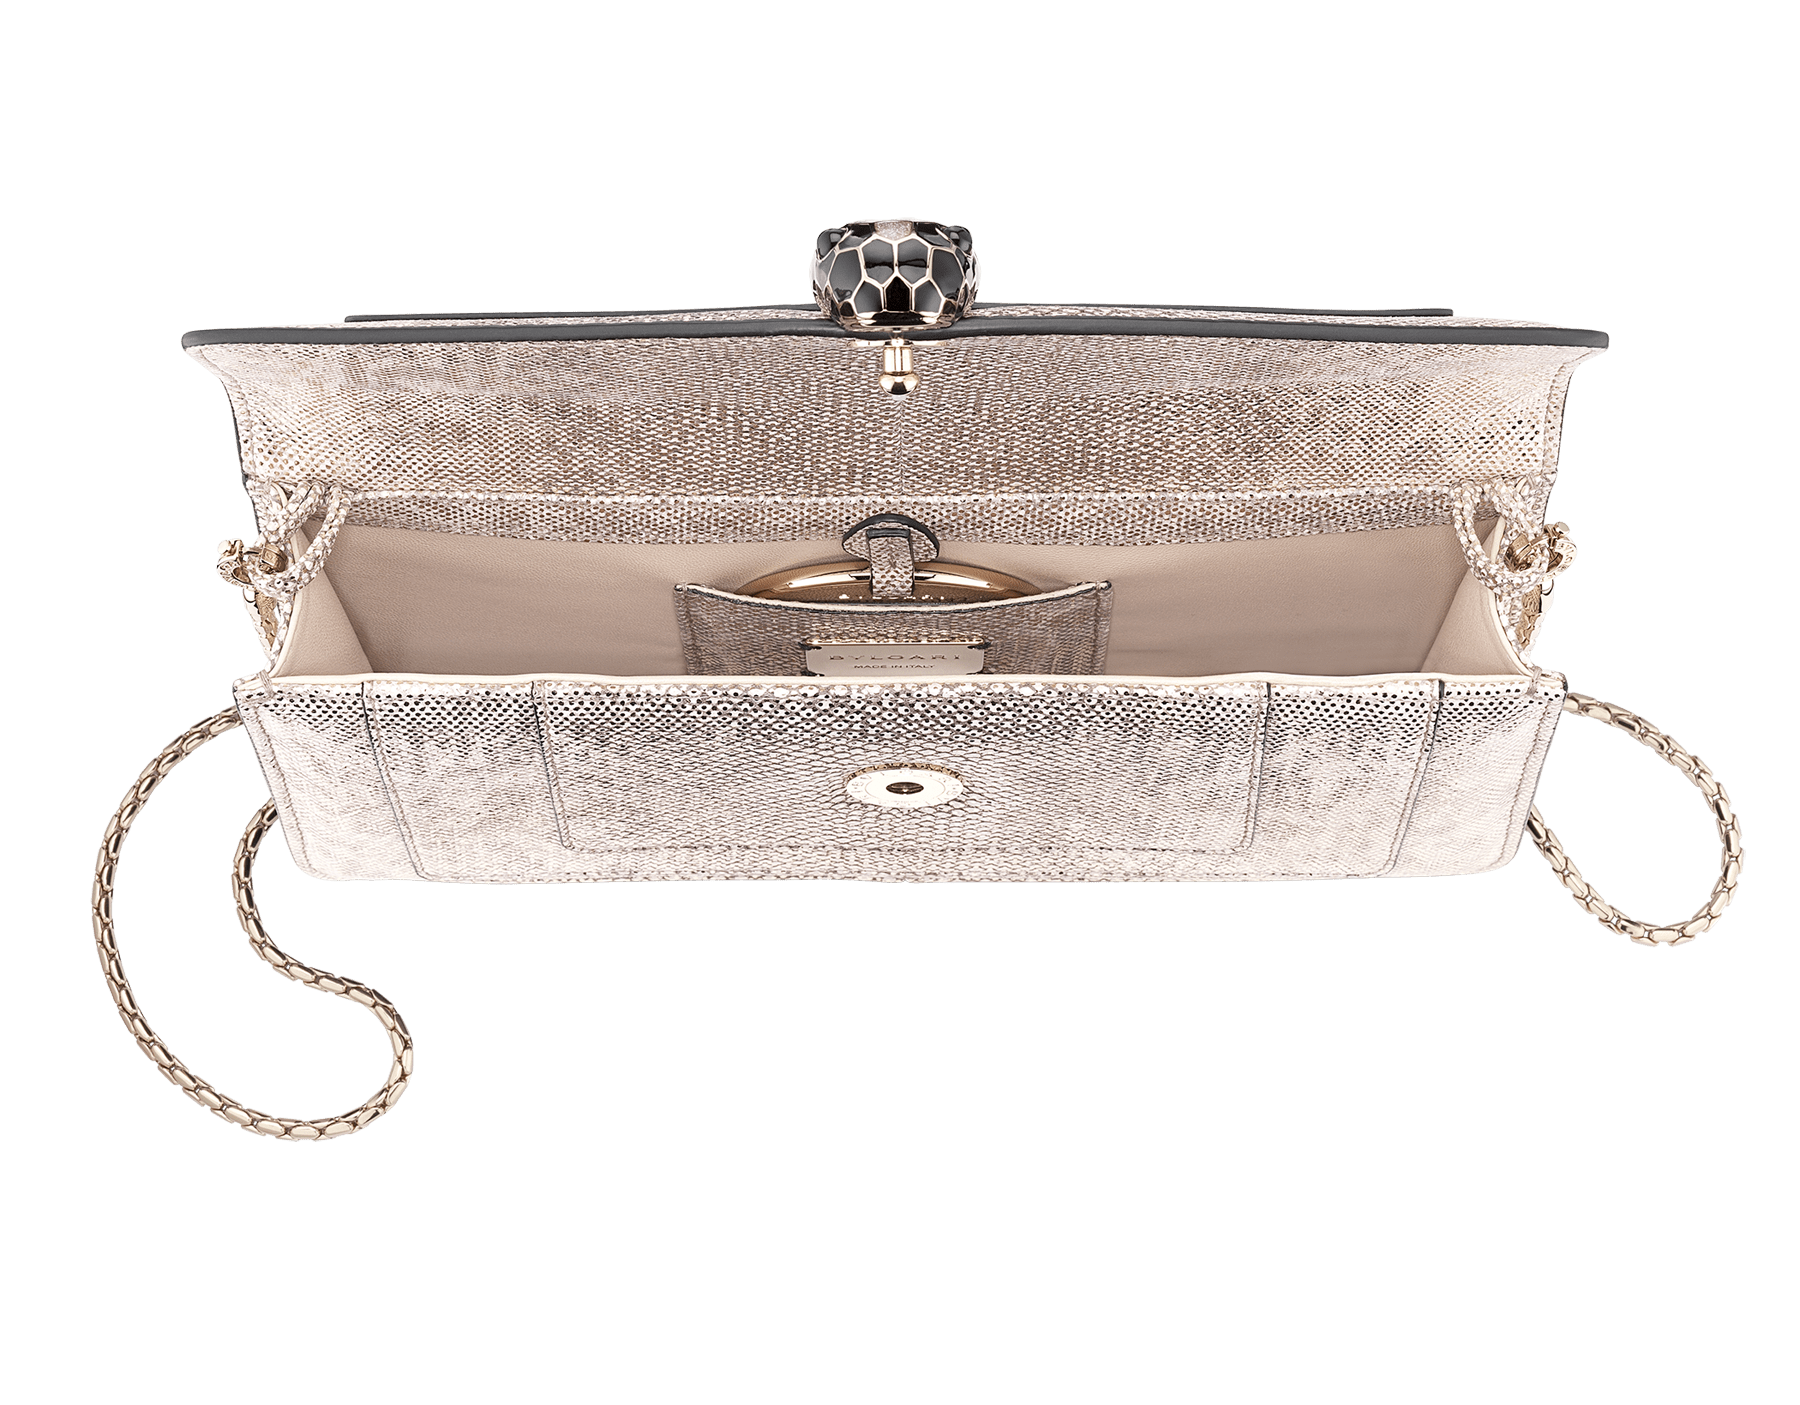 Serpenti Forever shoulder bag in milky opal metallic karung skin. Snakehead closure in light gold plated brass decorated with black and glitter milky opal enamel, and black onyx eyes. 287943 image 4